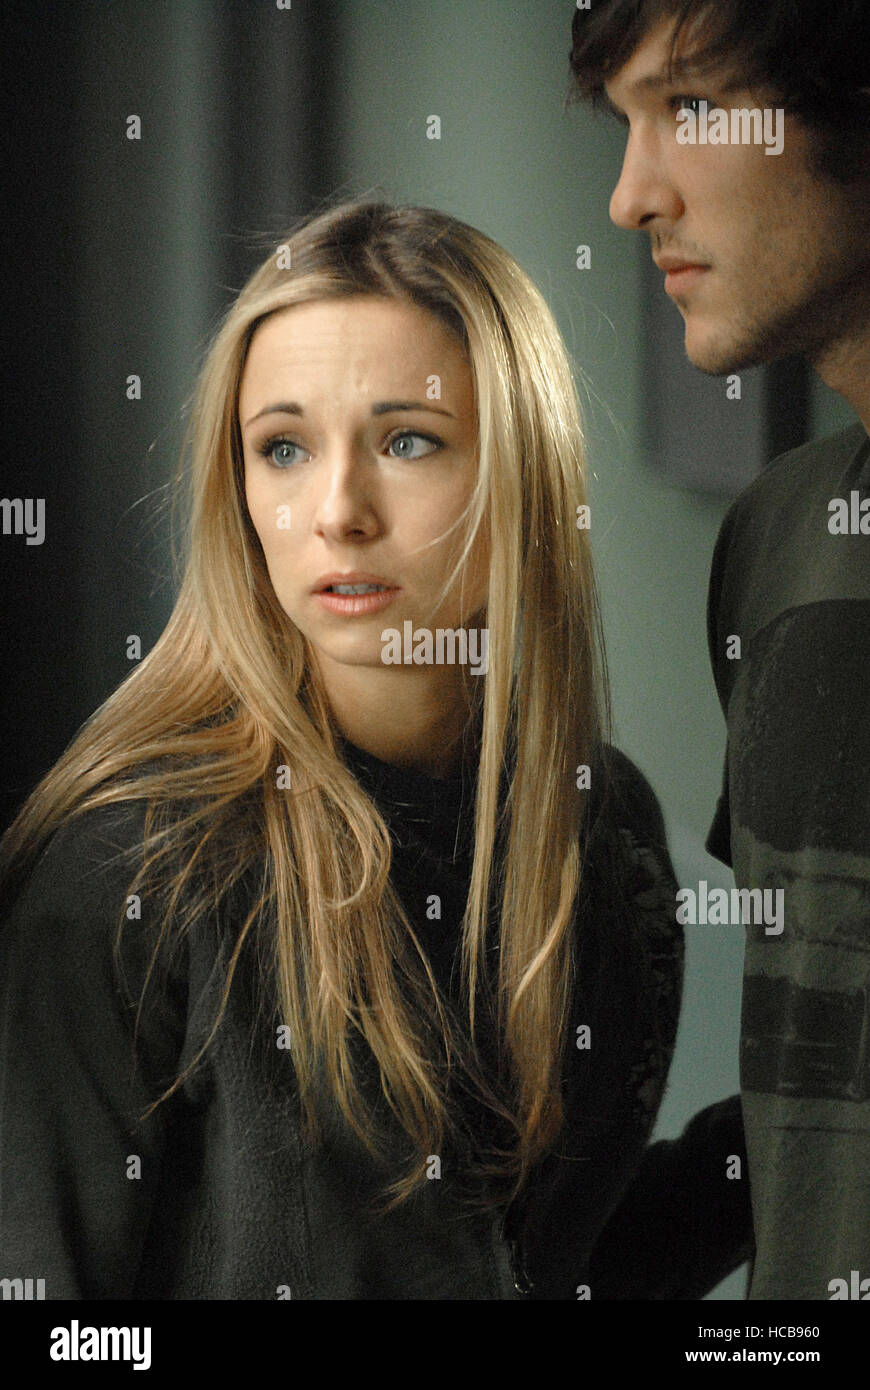 Boogeyman 2 Chrissy Griffith Michael Graziadei 2007 C Columbia Stock Photo Alamy